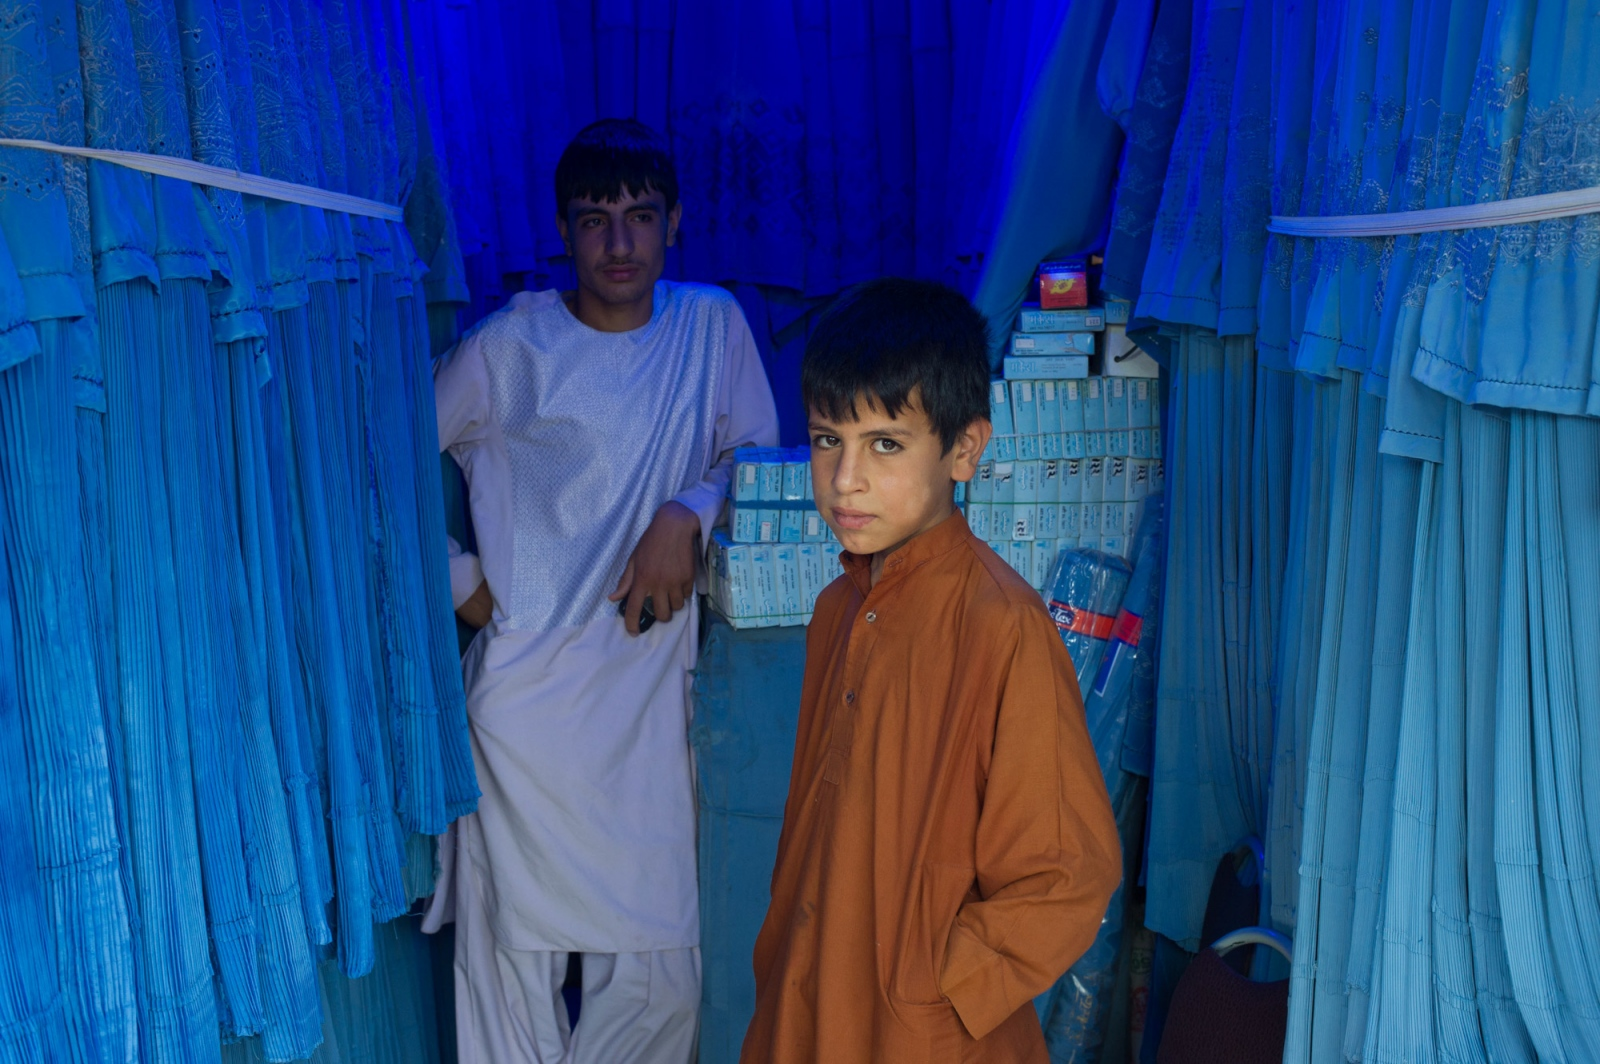 Brothers sell burqas in Herat, Afghanistan.